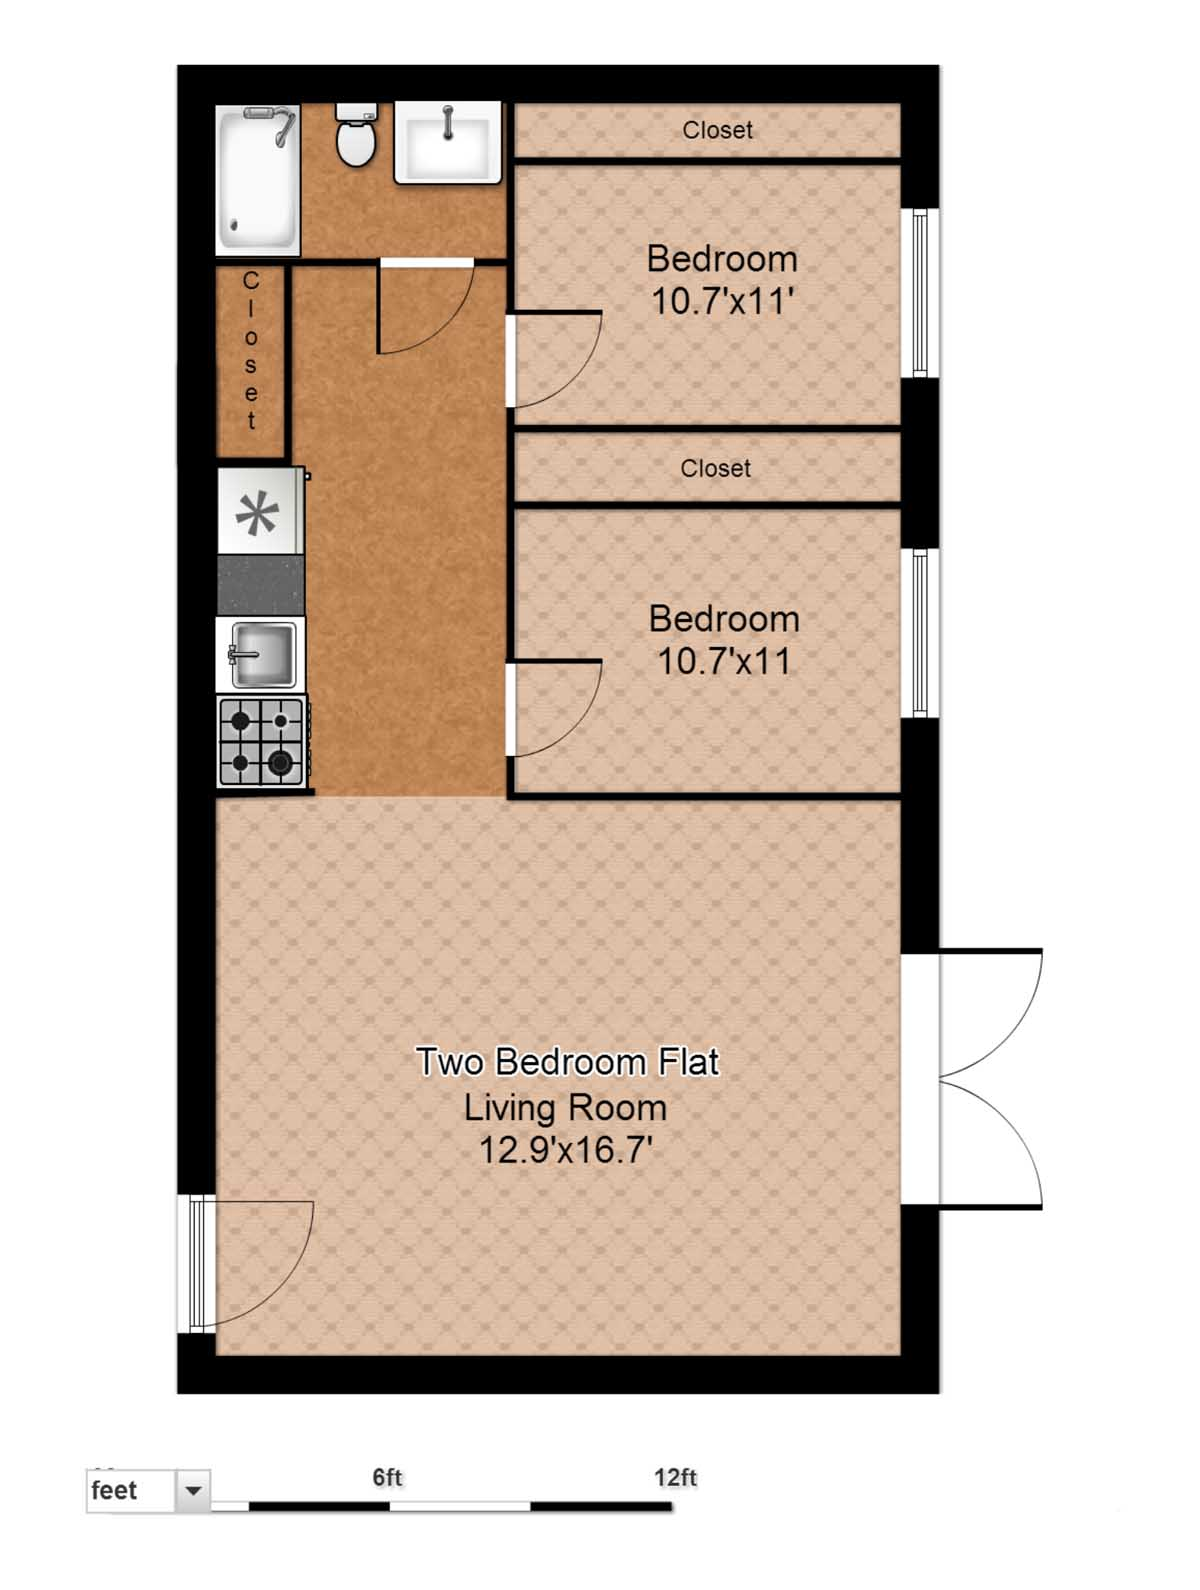 Floor plans evergreen terrace apartmentsevergreen for Floor plan design for 2 bedroom flat